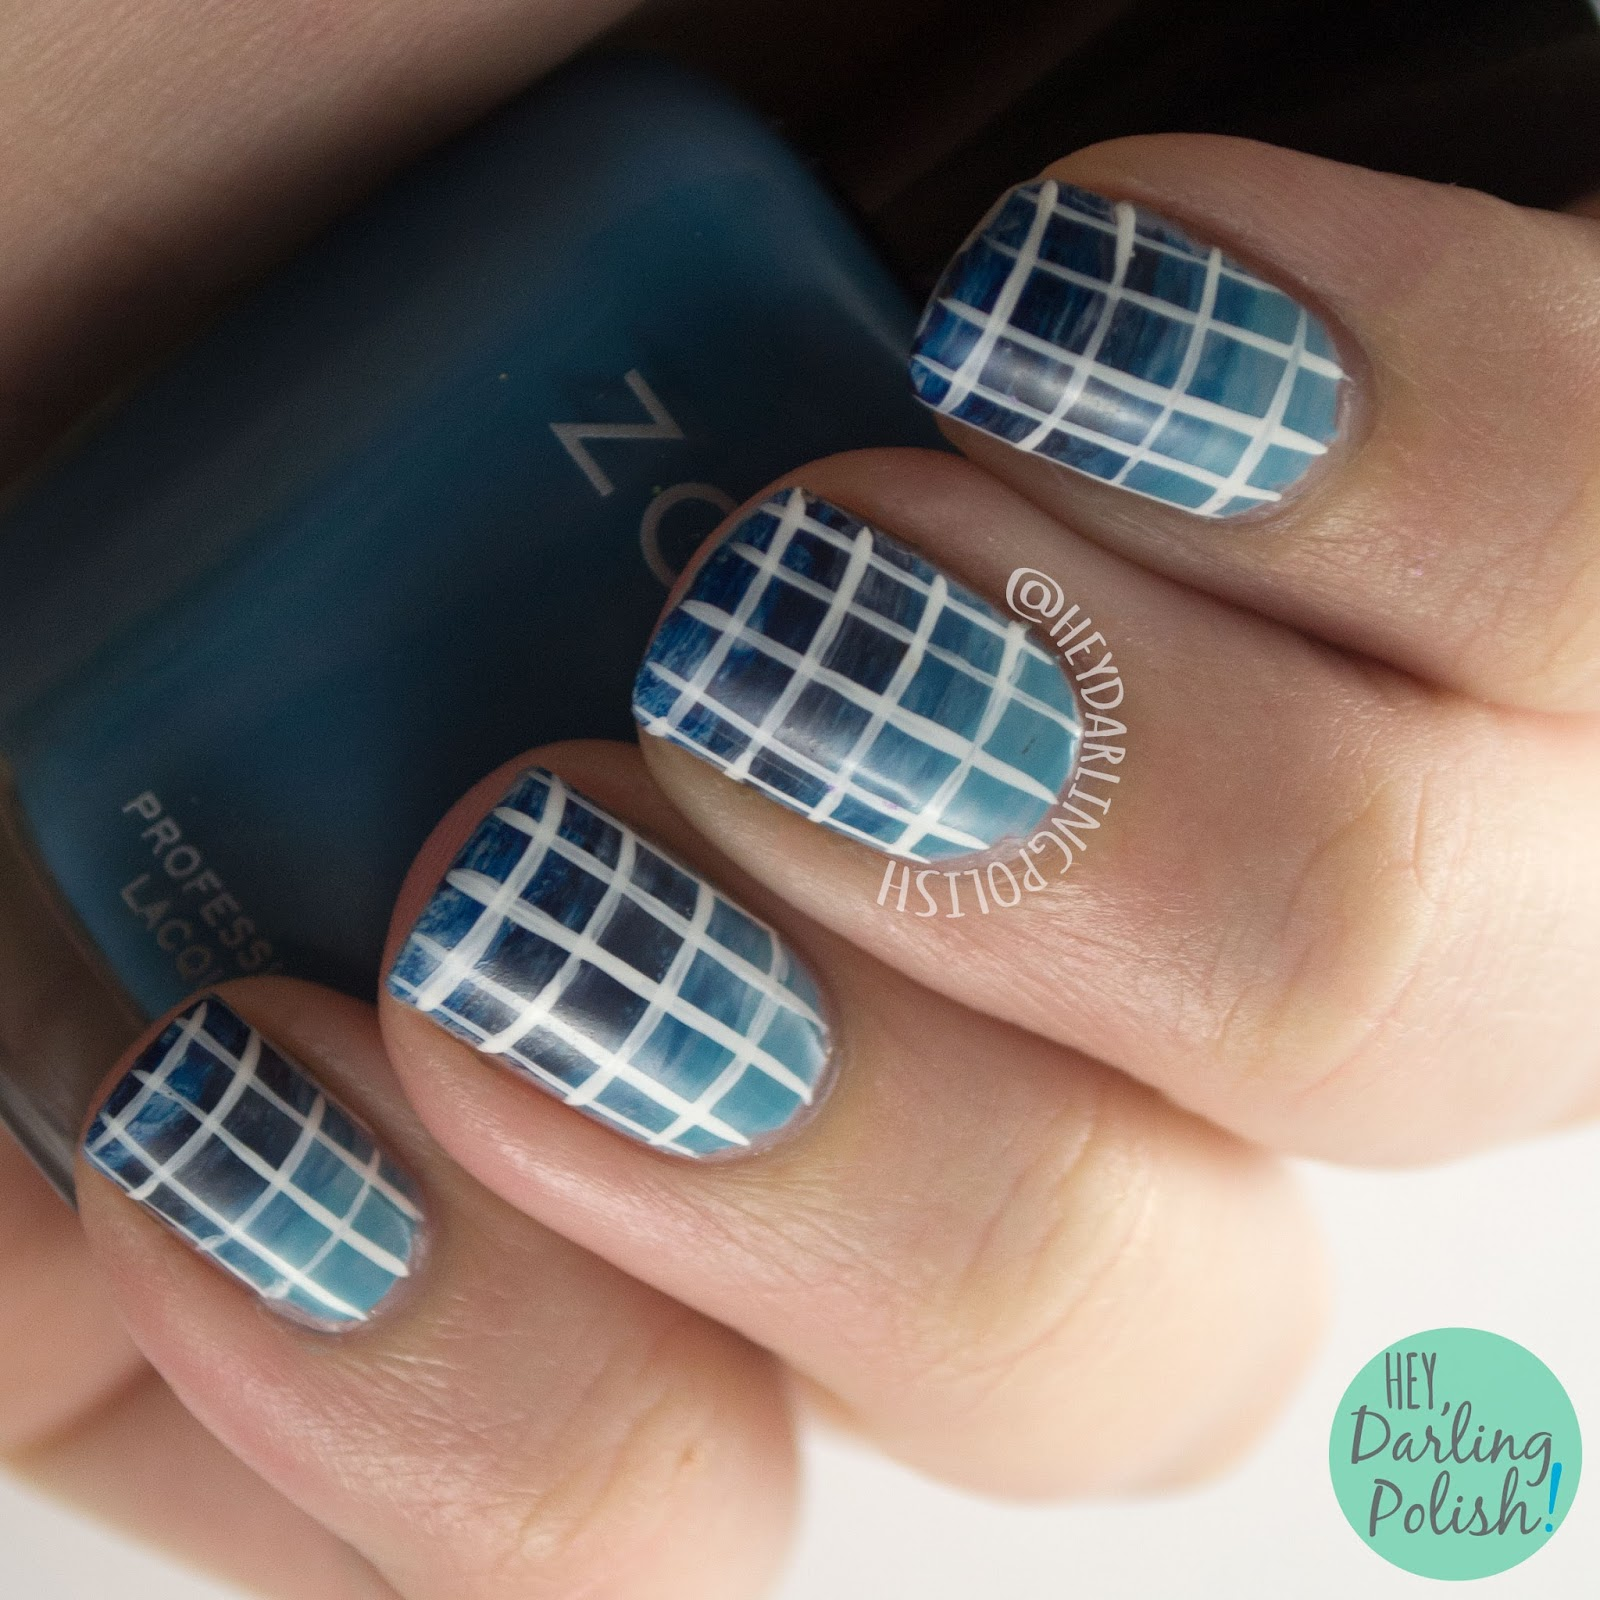 nails, nail art, nail polish, blue, gradient, grid, 31dc2015, hey darling polish,